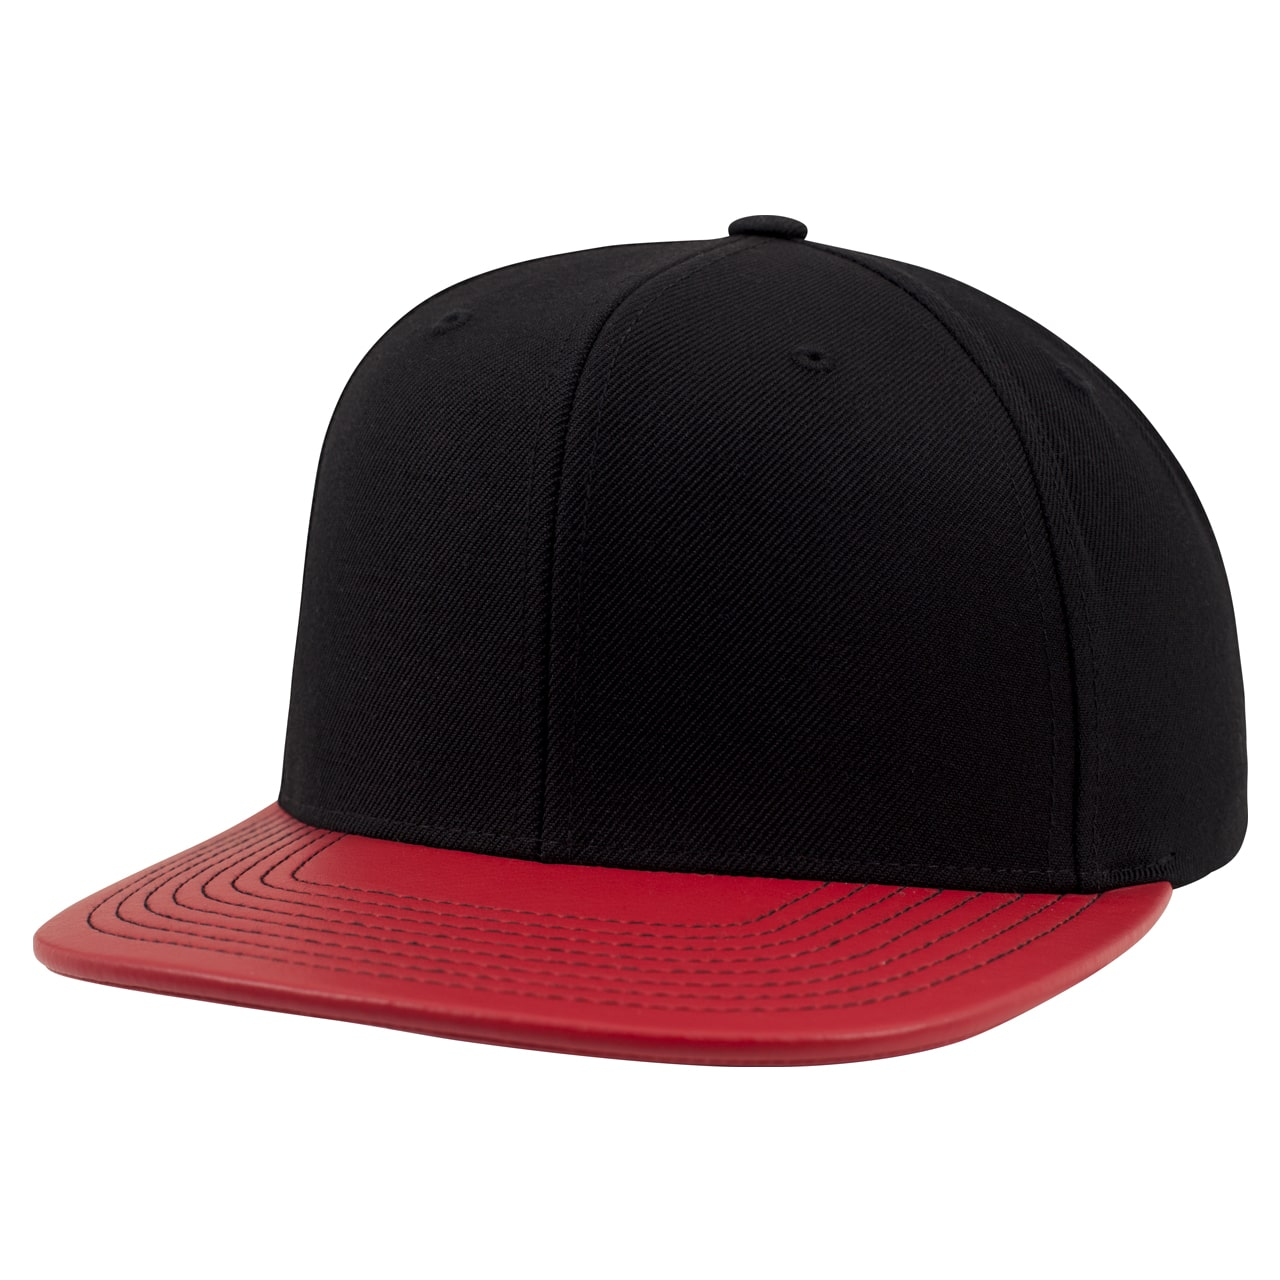 Metallic Visor Snapback Cap - Red